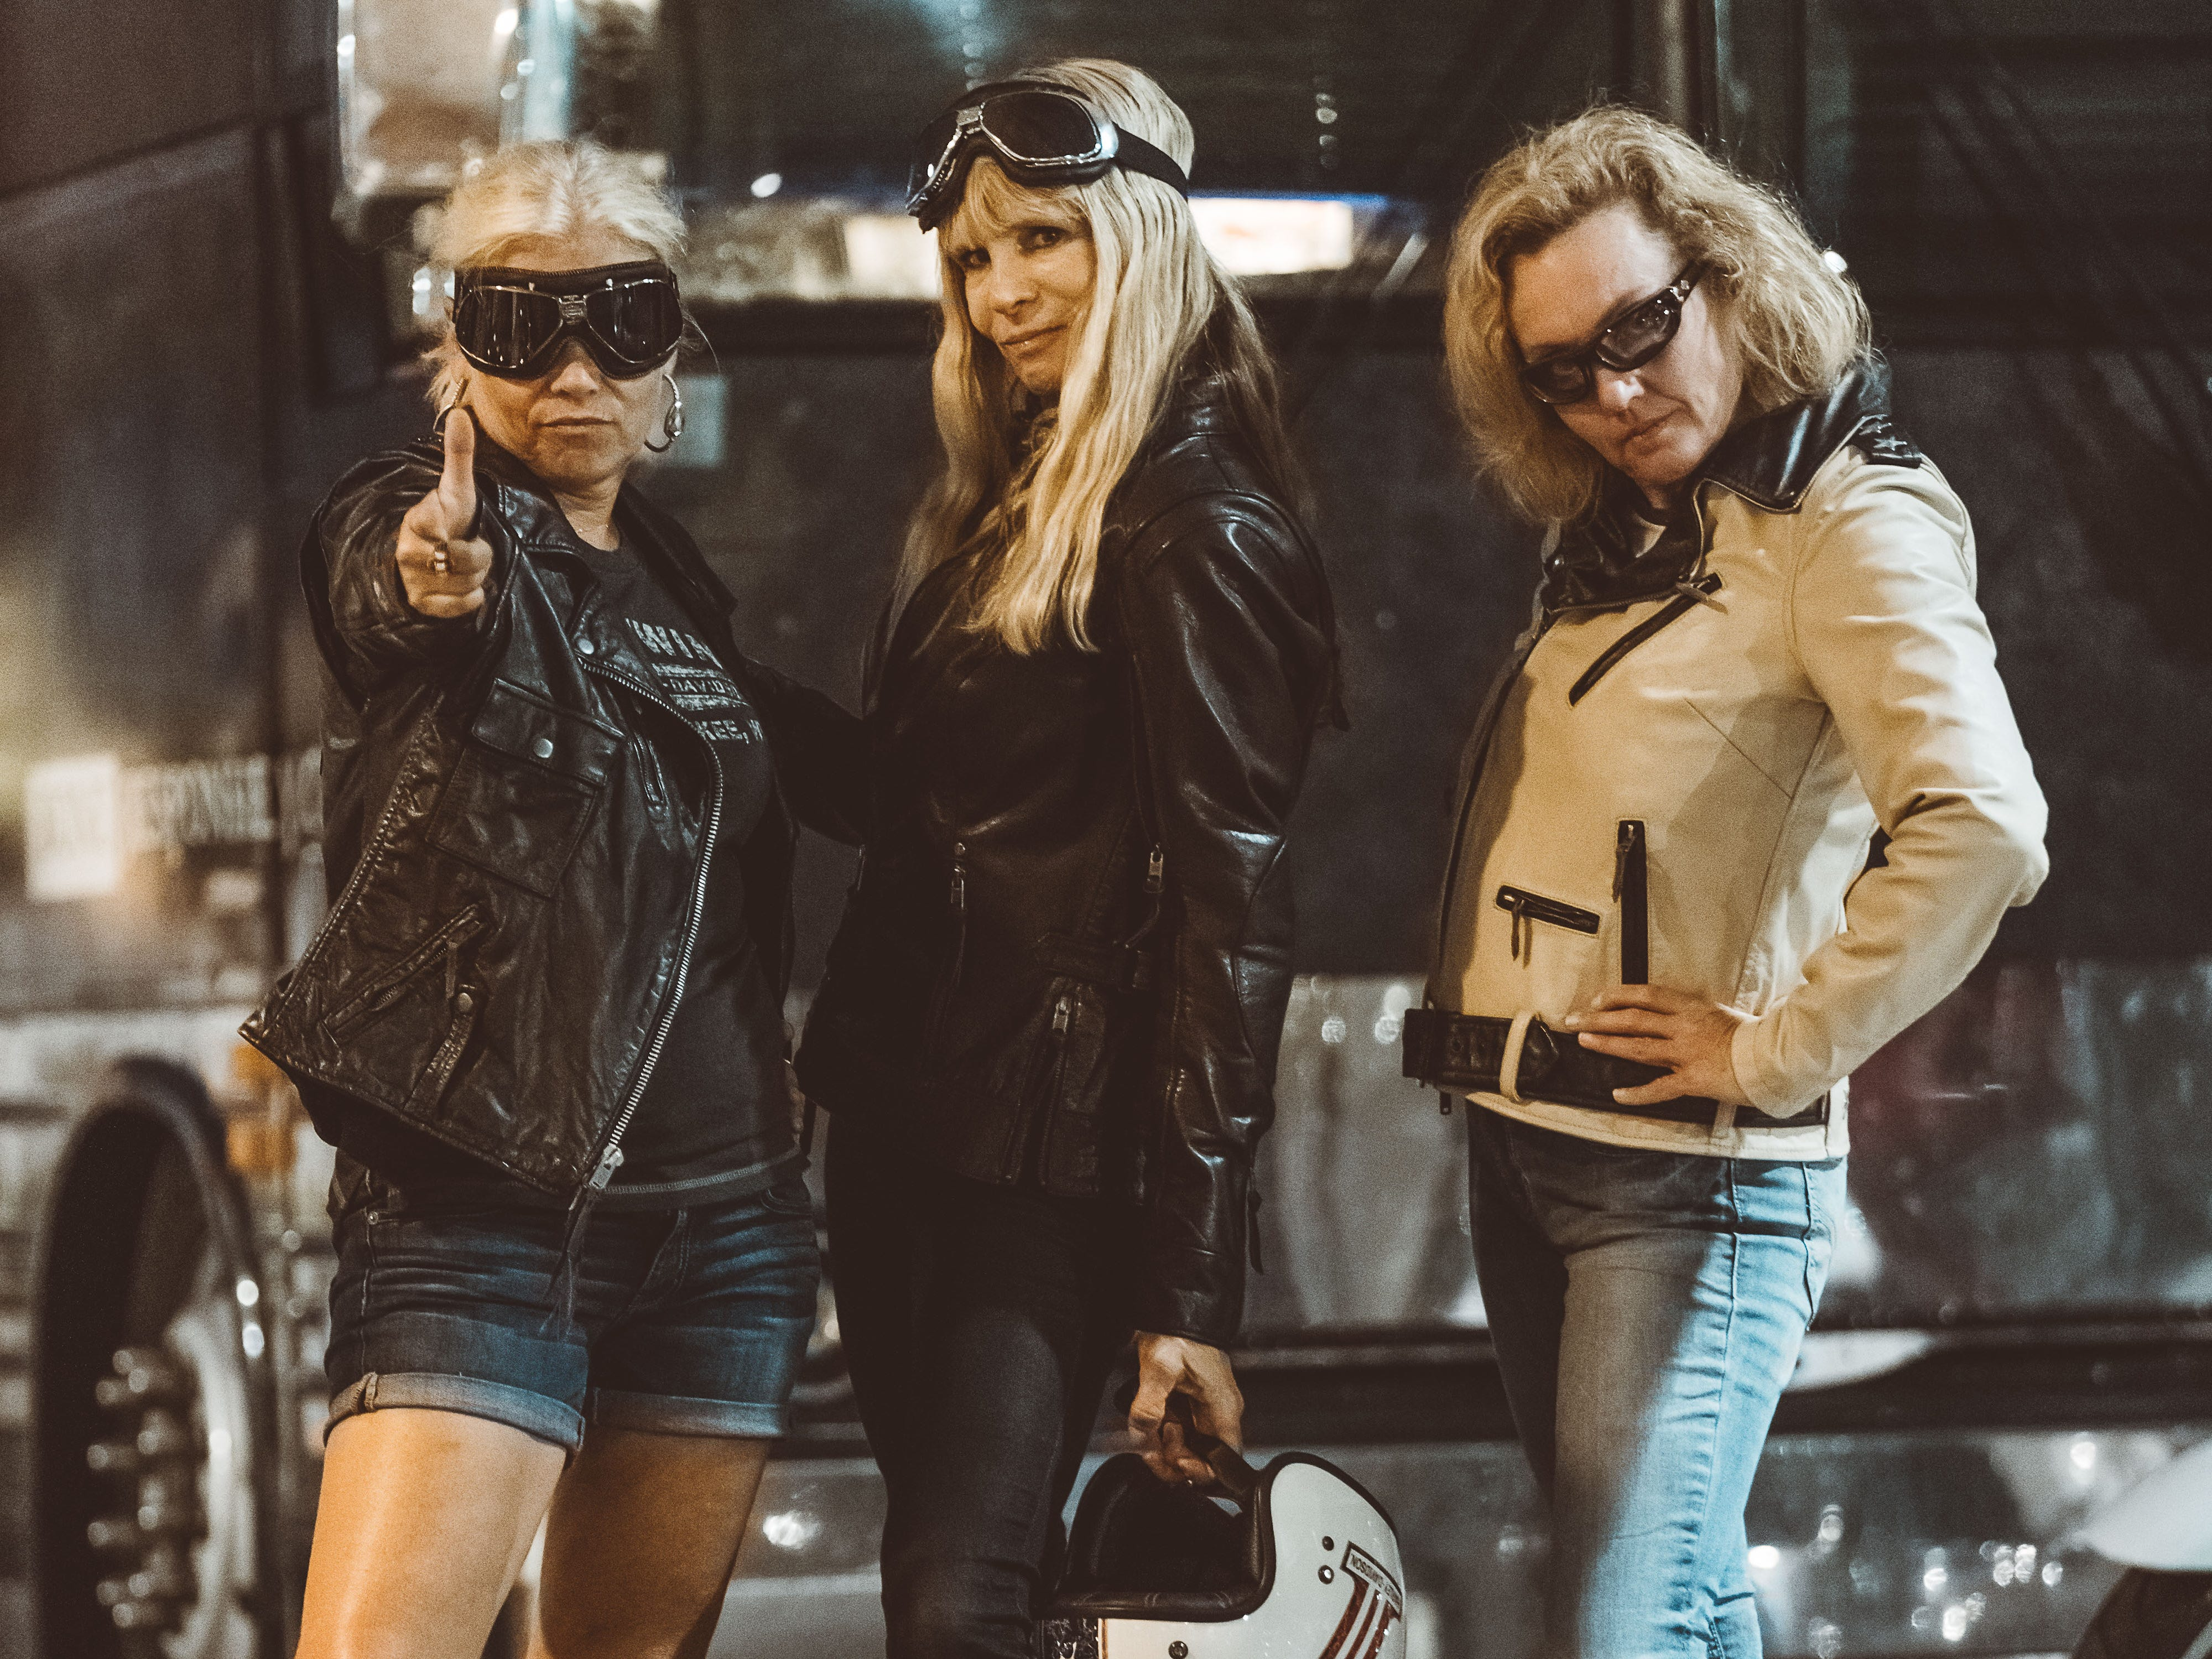 Majsan Bostrom (left) and Amanda Kingsbury (right) were styled by Karen Davidson (center), creative head for Harley-Davidson's MotorClothes and great-granddaughter of Harley-Davidson co-founder William A. Davidson, on Aug. 26 at the Worth Harley-Davidson Dealership in Kansas City, Mo.